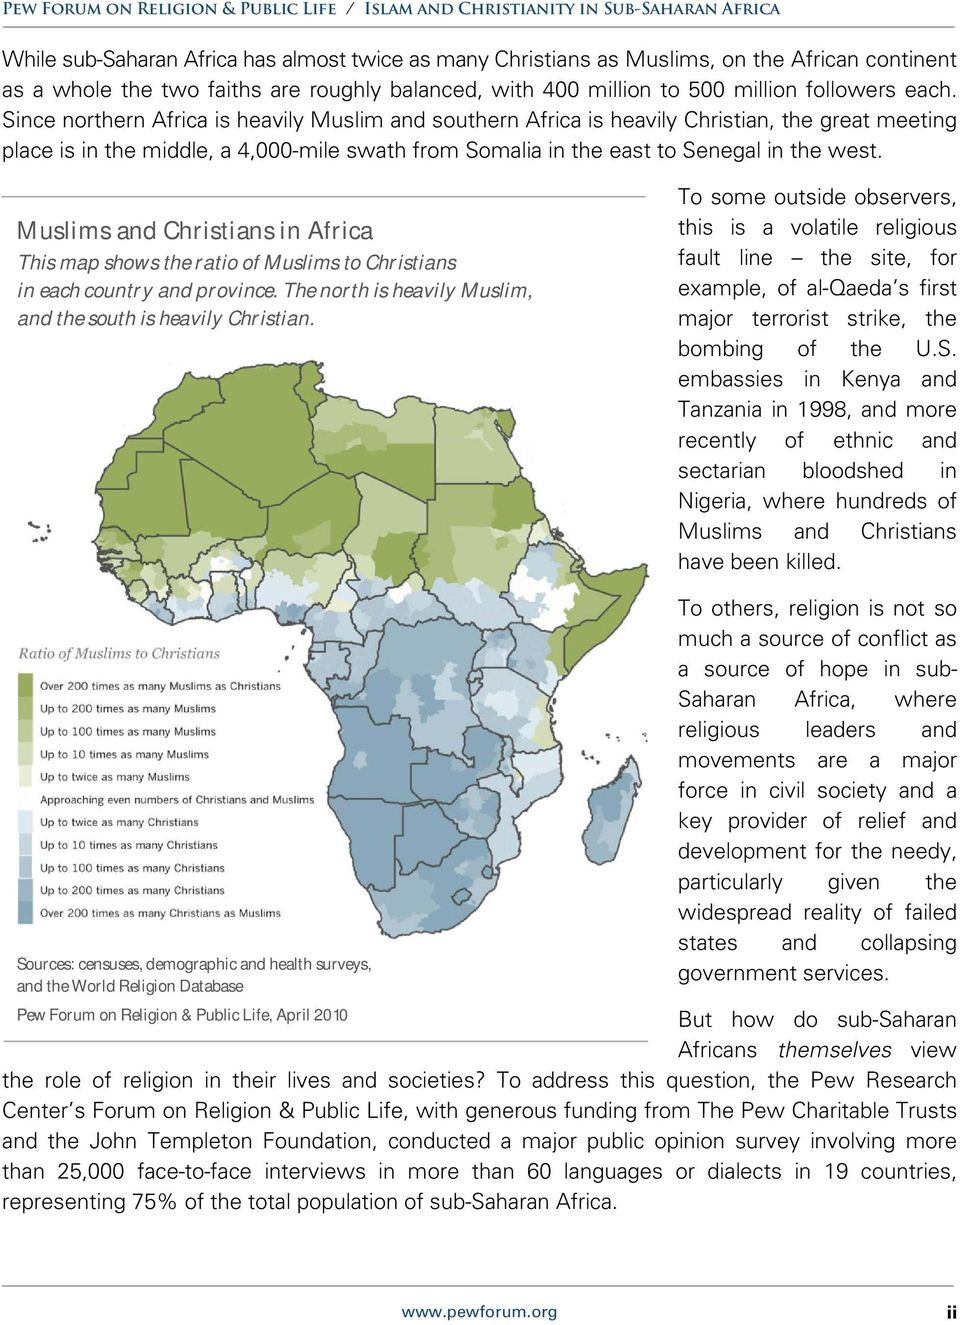 Growth Of Islam Christianity In Sub Saharan Africa Since Pdf